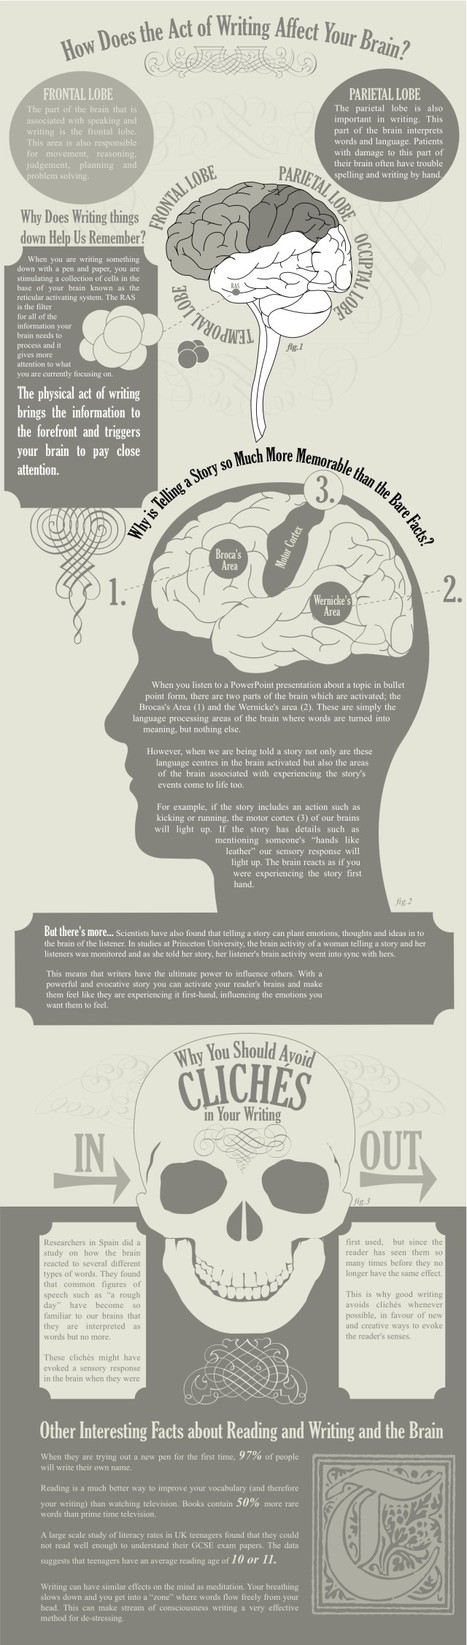 How Does the Act of Writing Affect Your Brain? | Web-based Cognitive Writing Instruction | Scoop.it